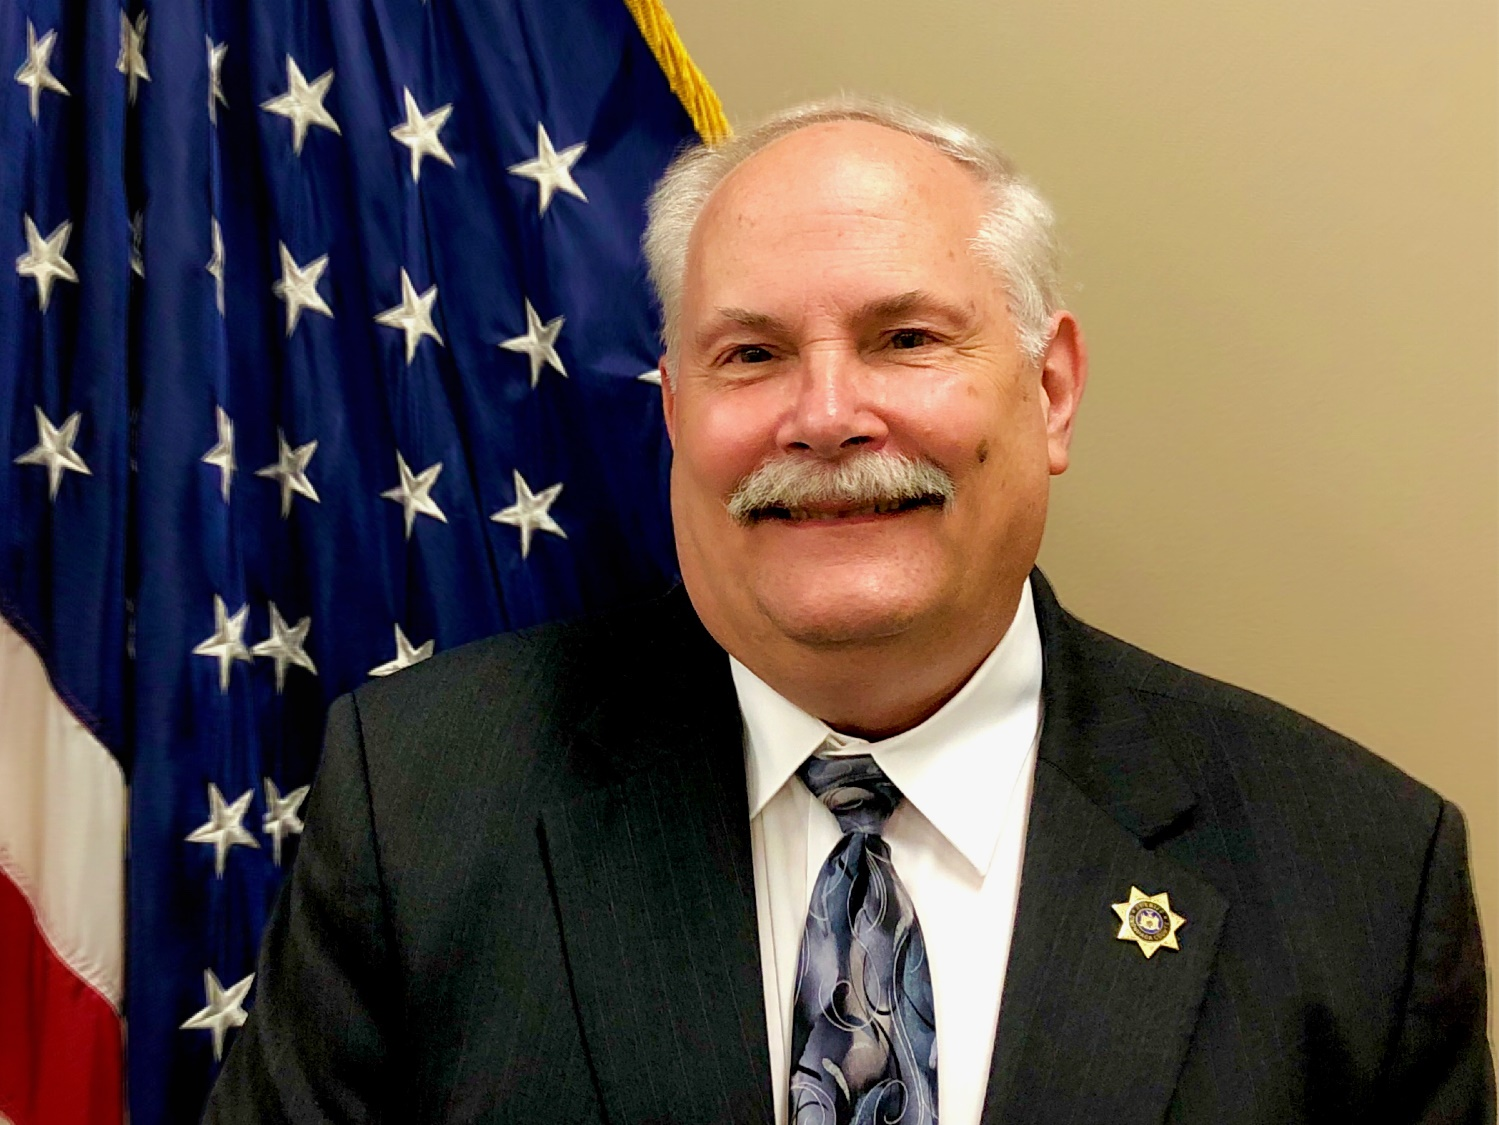 New Onondaga County jail boss needs state OK to keep double-dipping